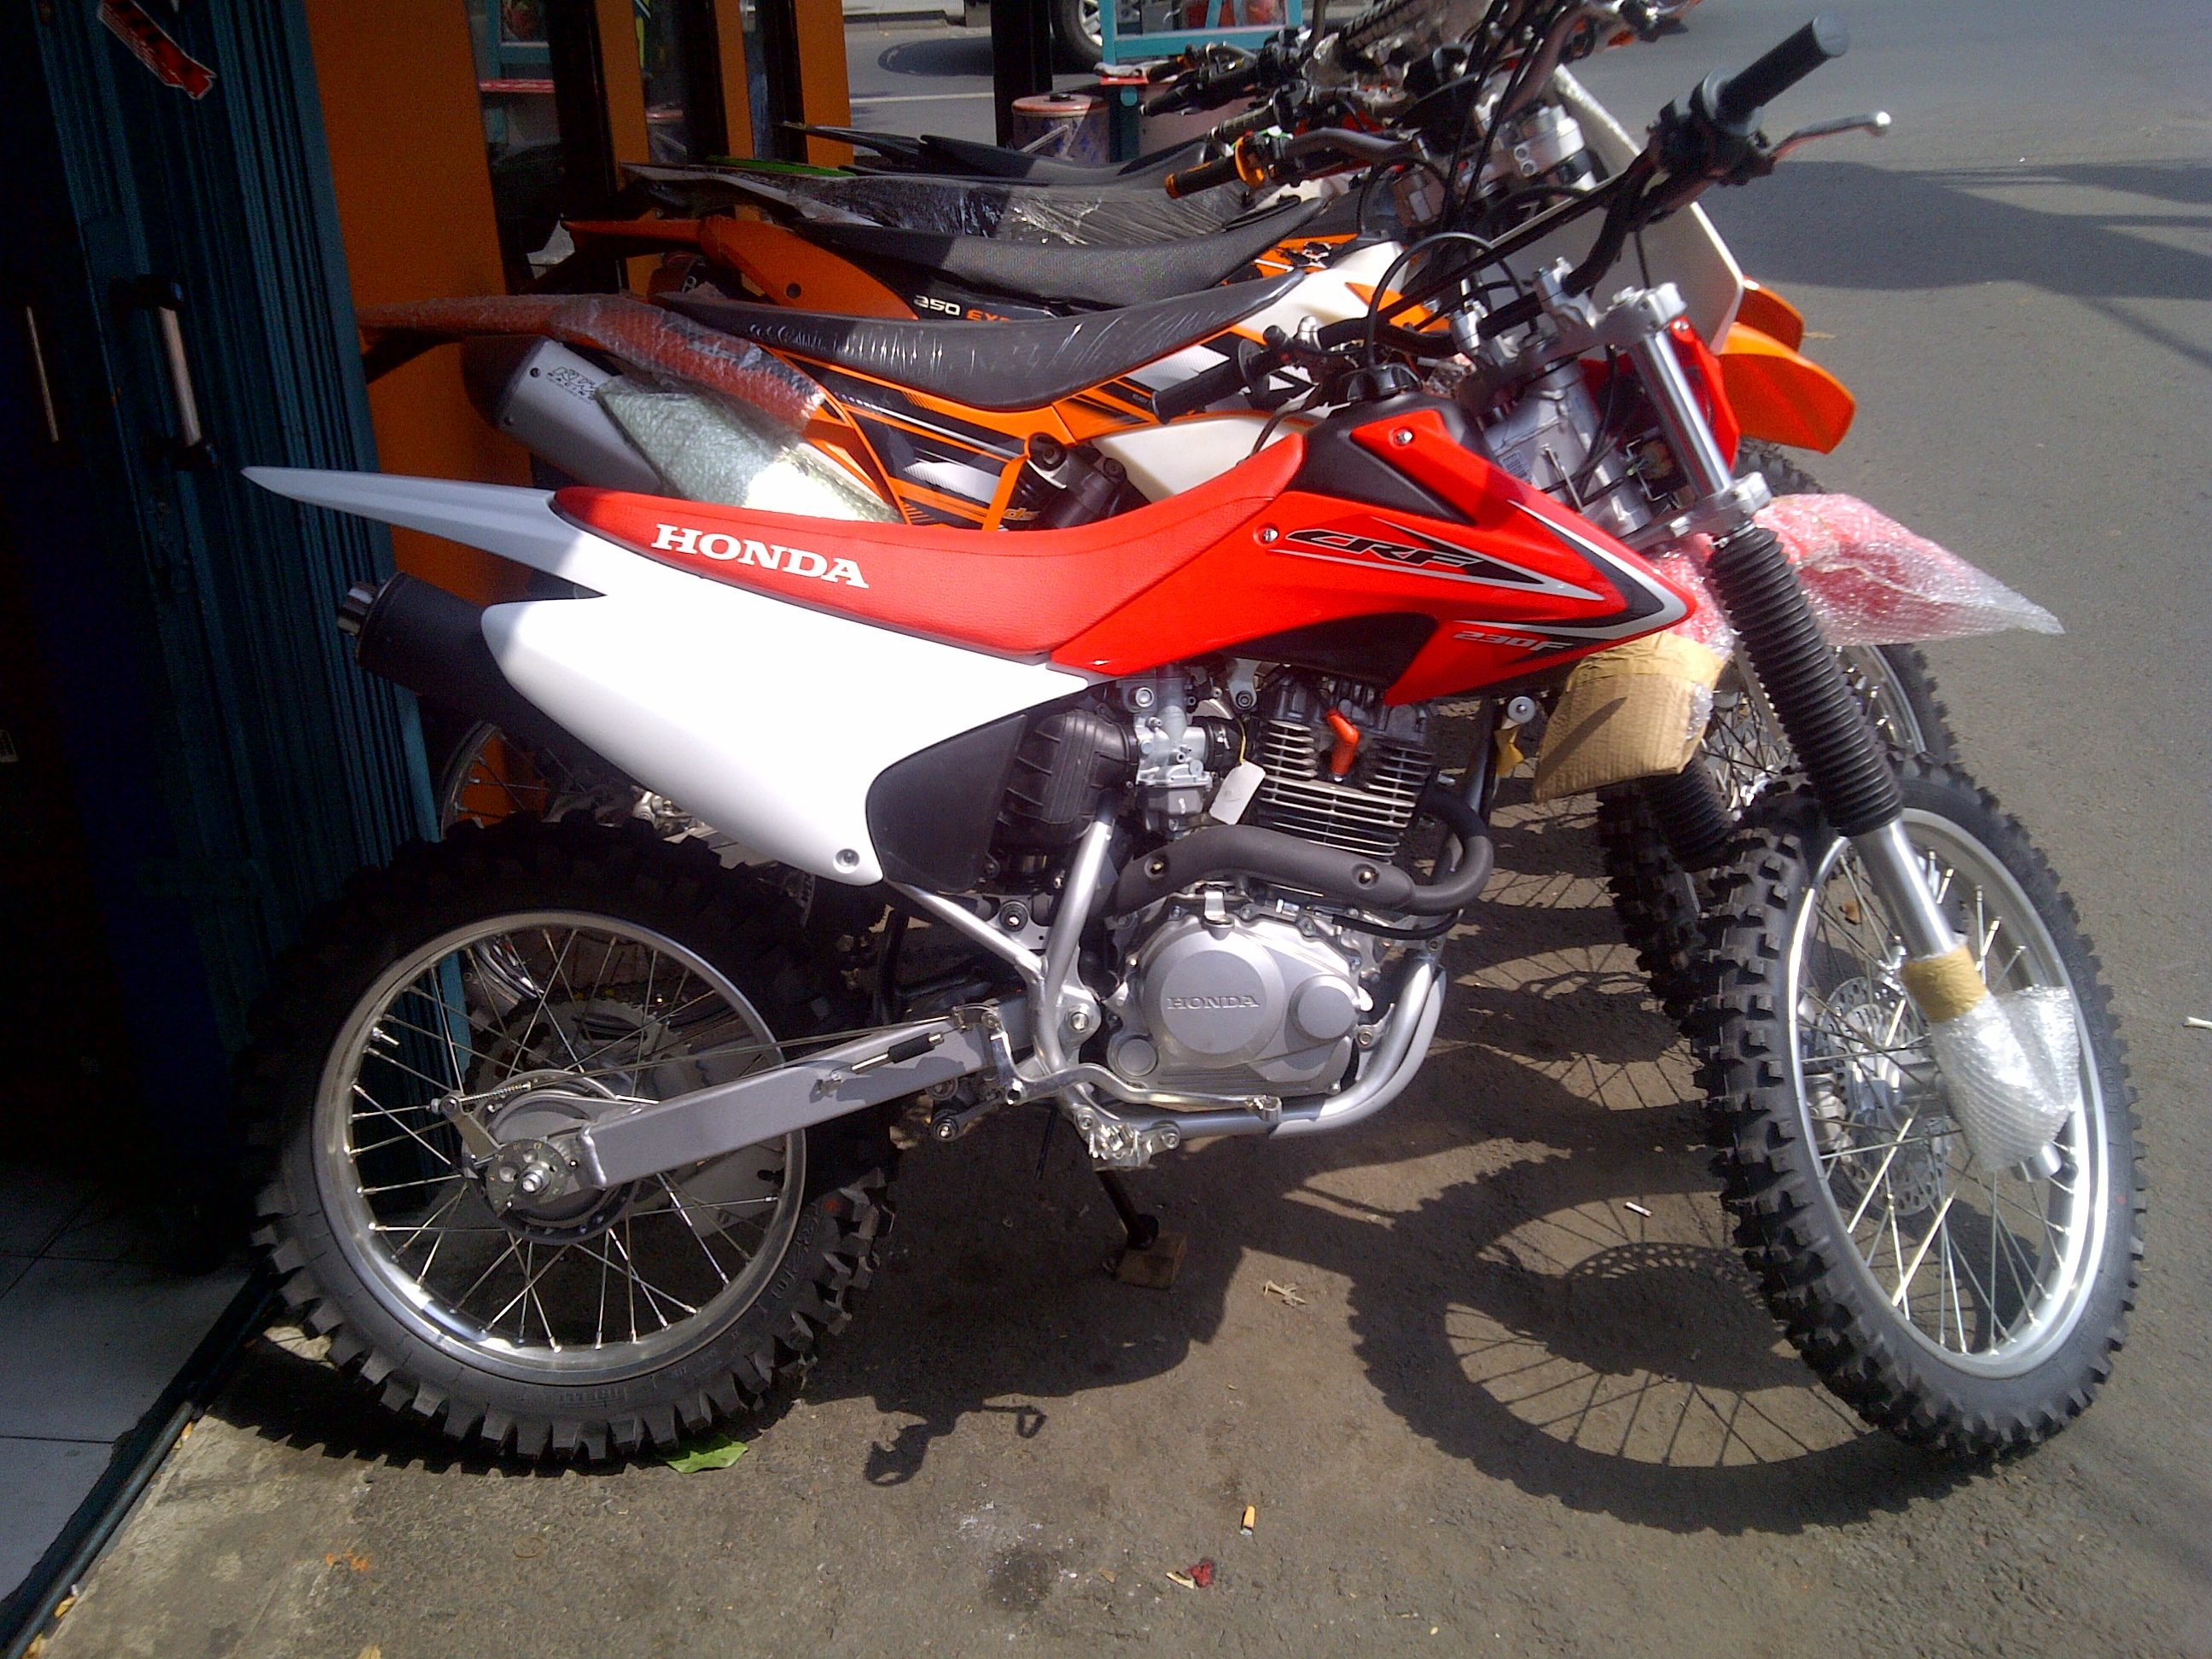 Kebon Jeruk 20130629 00530 Jual motor trail enduro honda CRF 230 F th 013 FROM A...